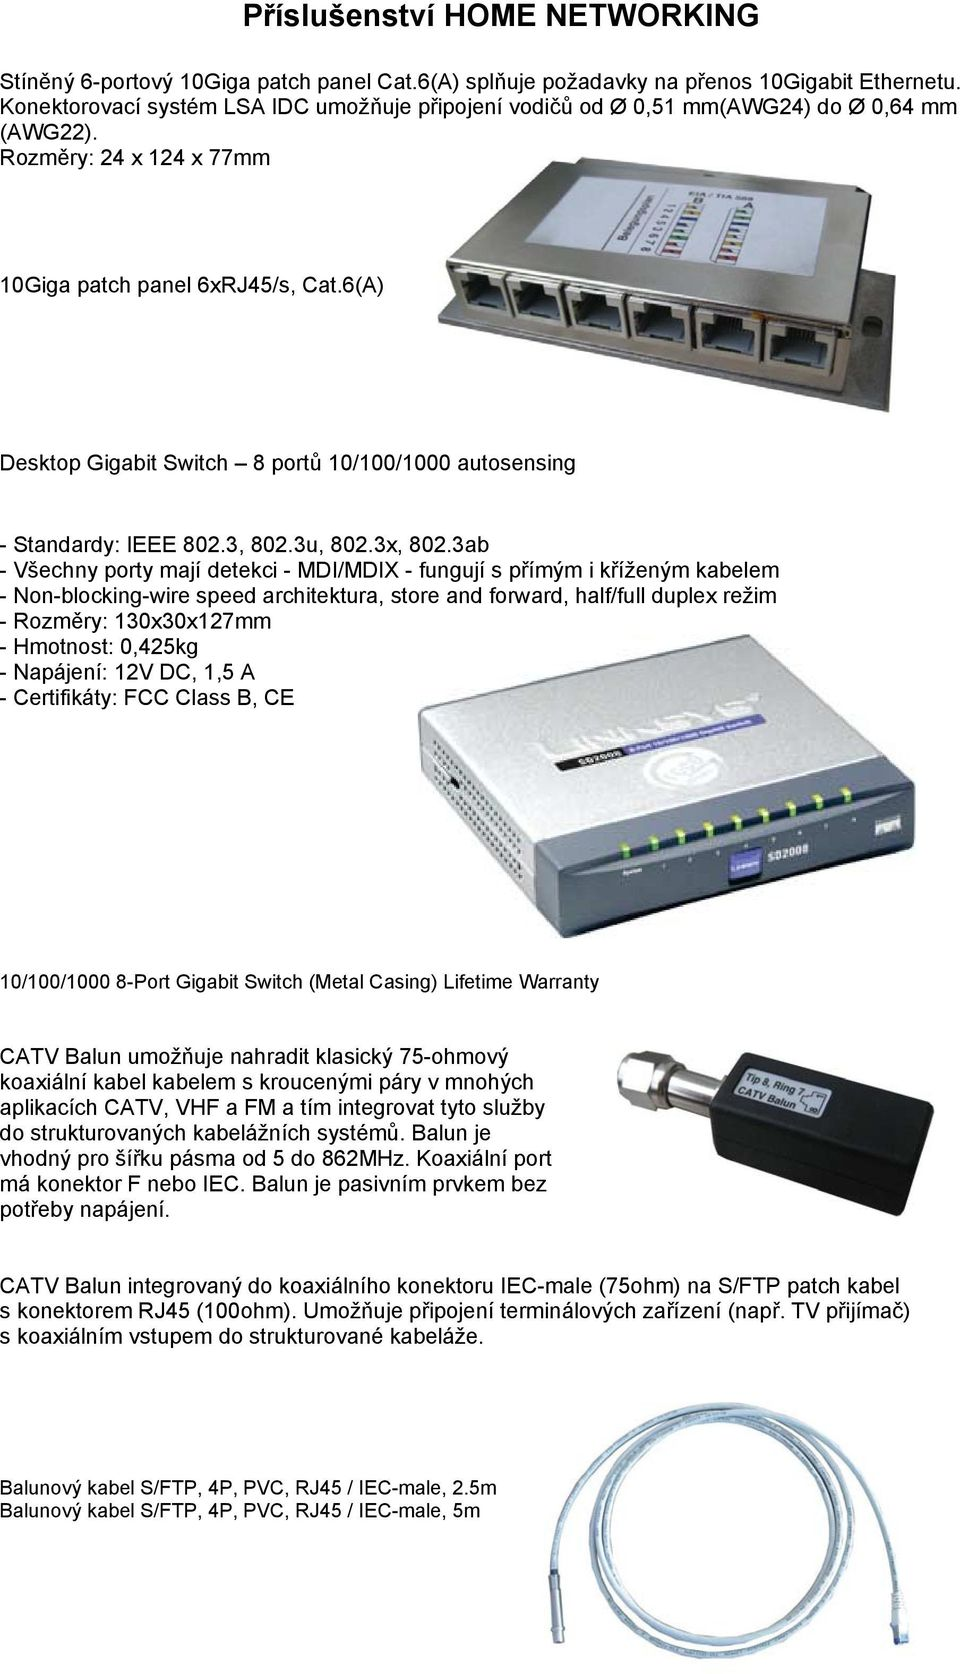 6(A) Desktop Gigabit Switch 8 portů 10/100/1000 autosensing - Standardy: IEEE 802.3, 802.3u, 802.3x, 802.